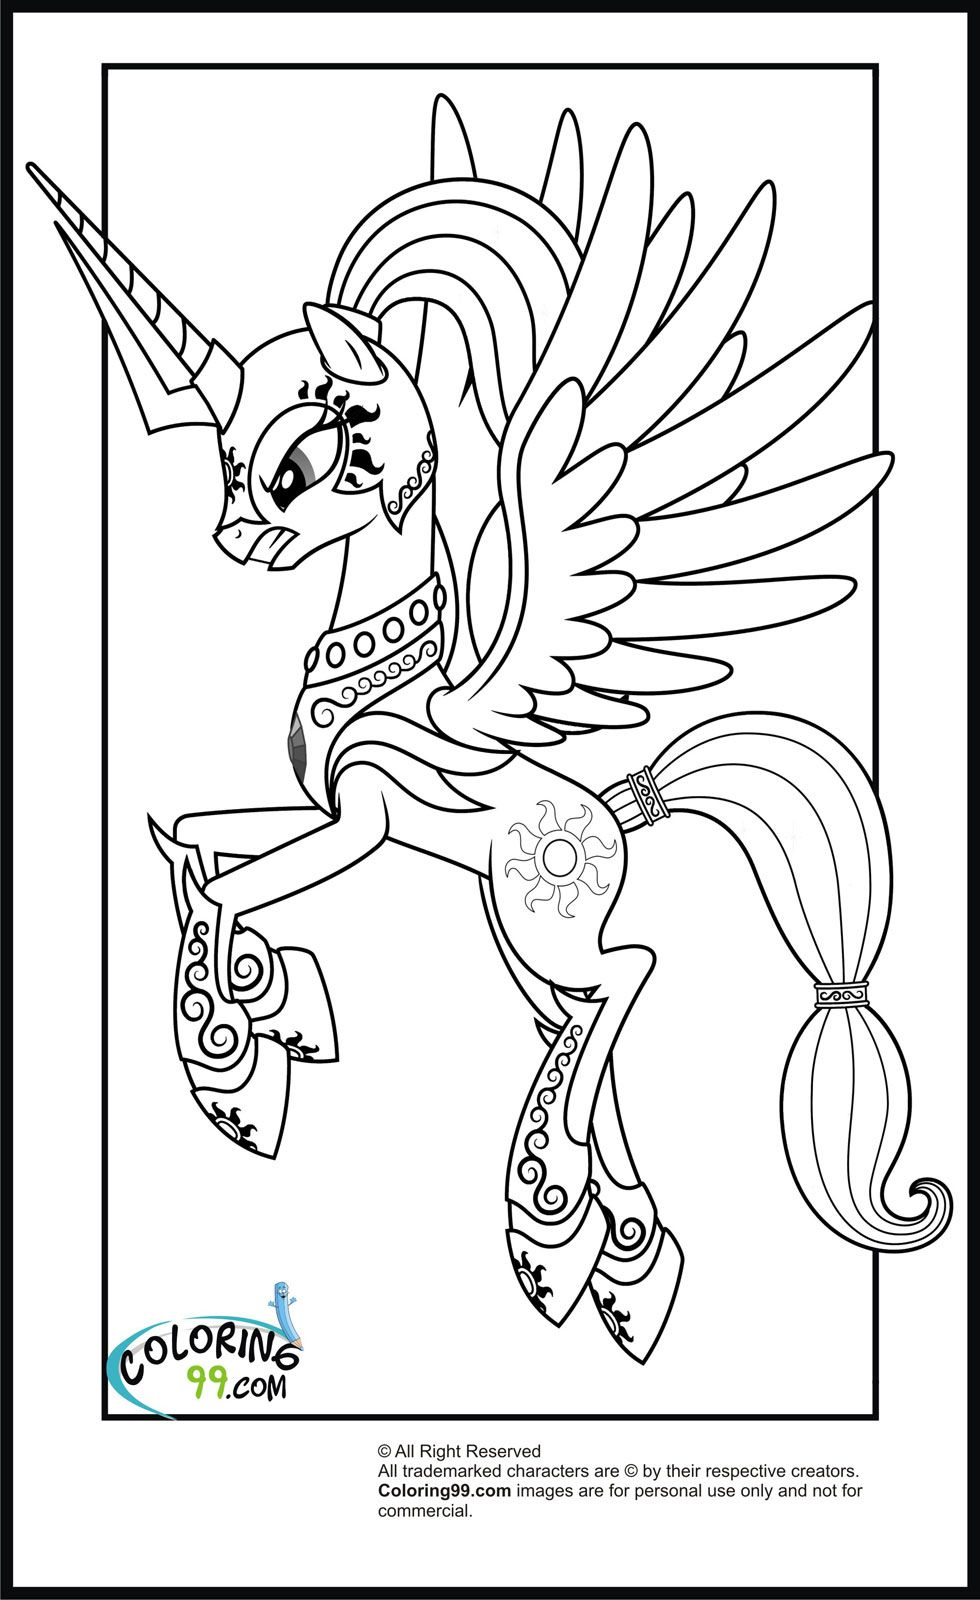 Coloring pages of princess cadence - My Little Pony Princess Celestia Coloring Pages